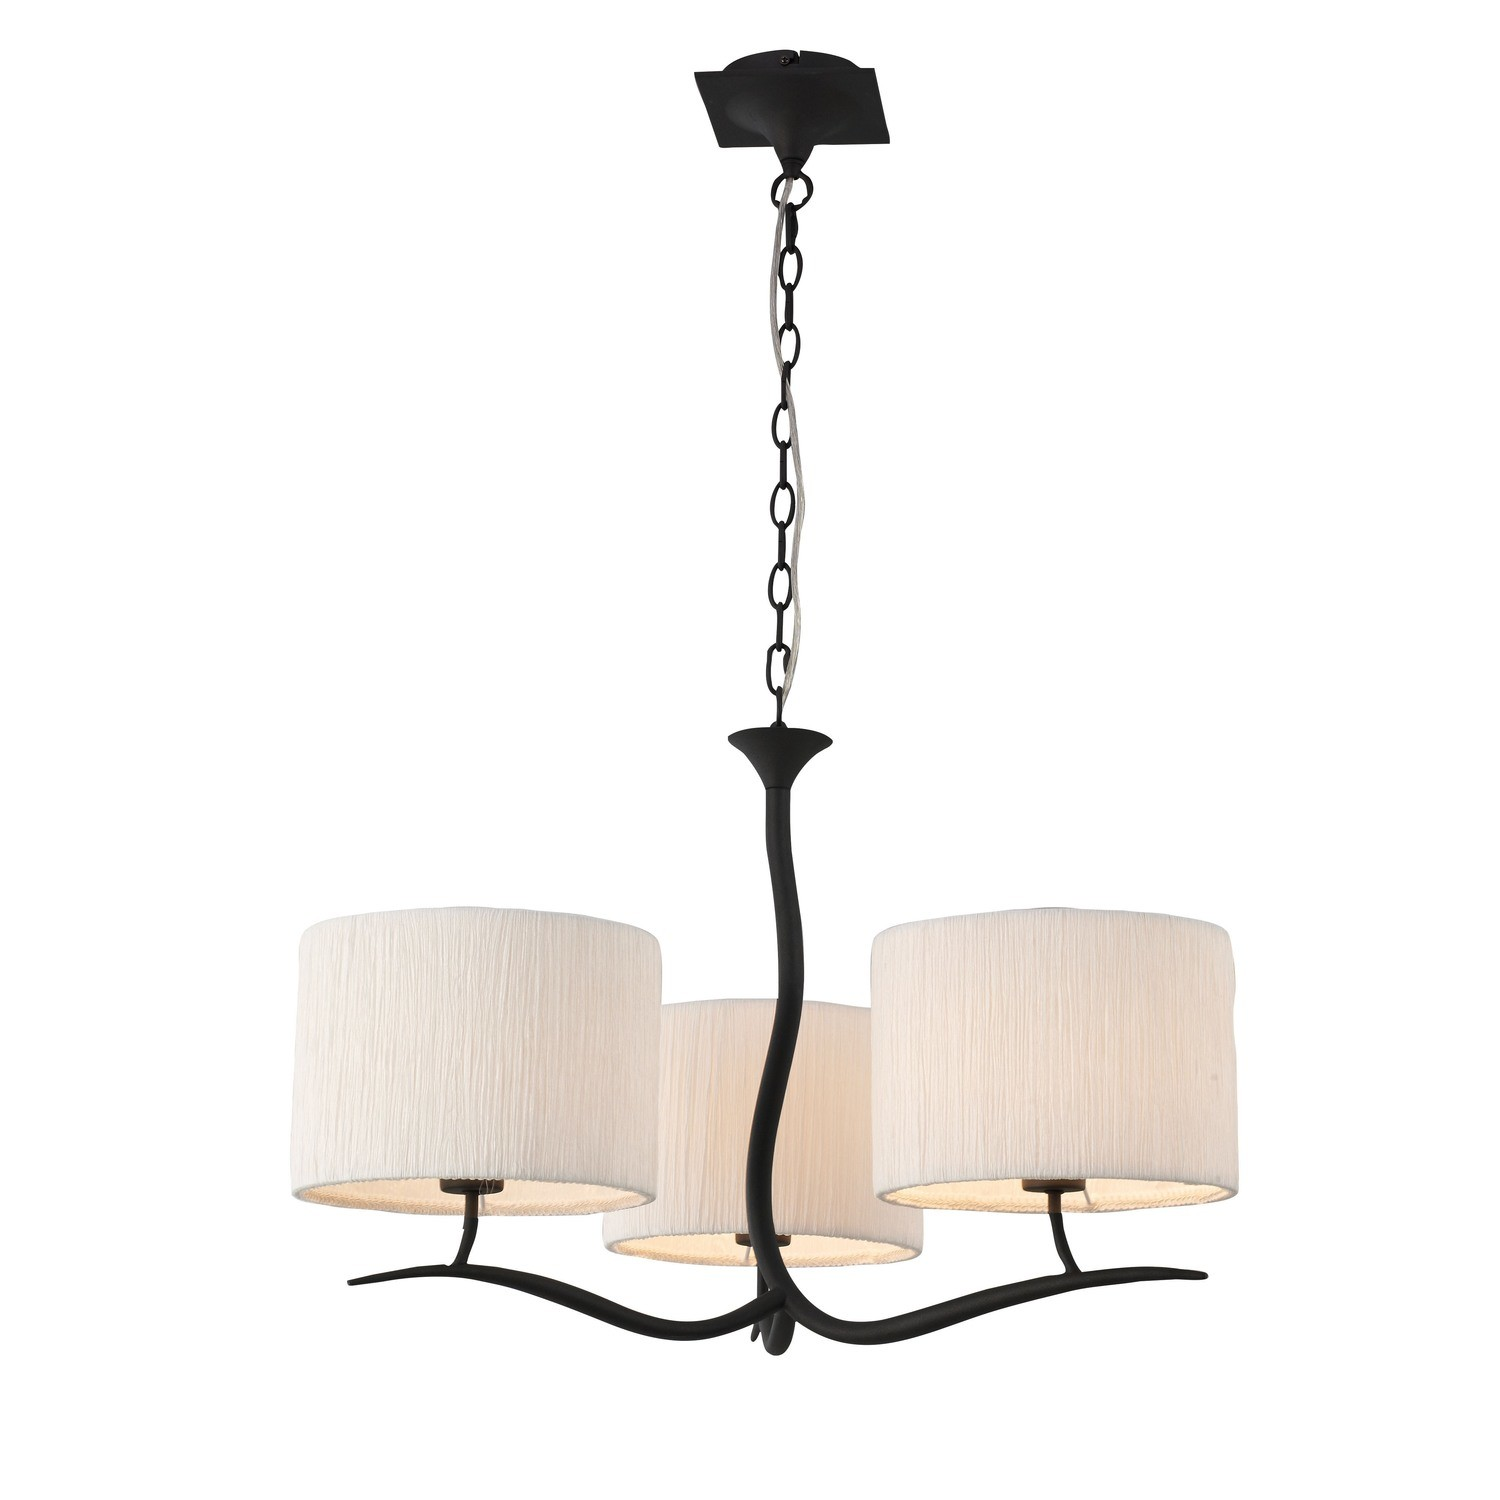 Eve Pendant 3 Light E27, Anthracite With White Round Shades